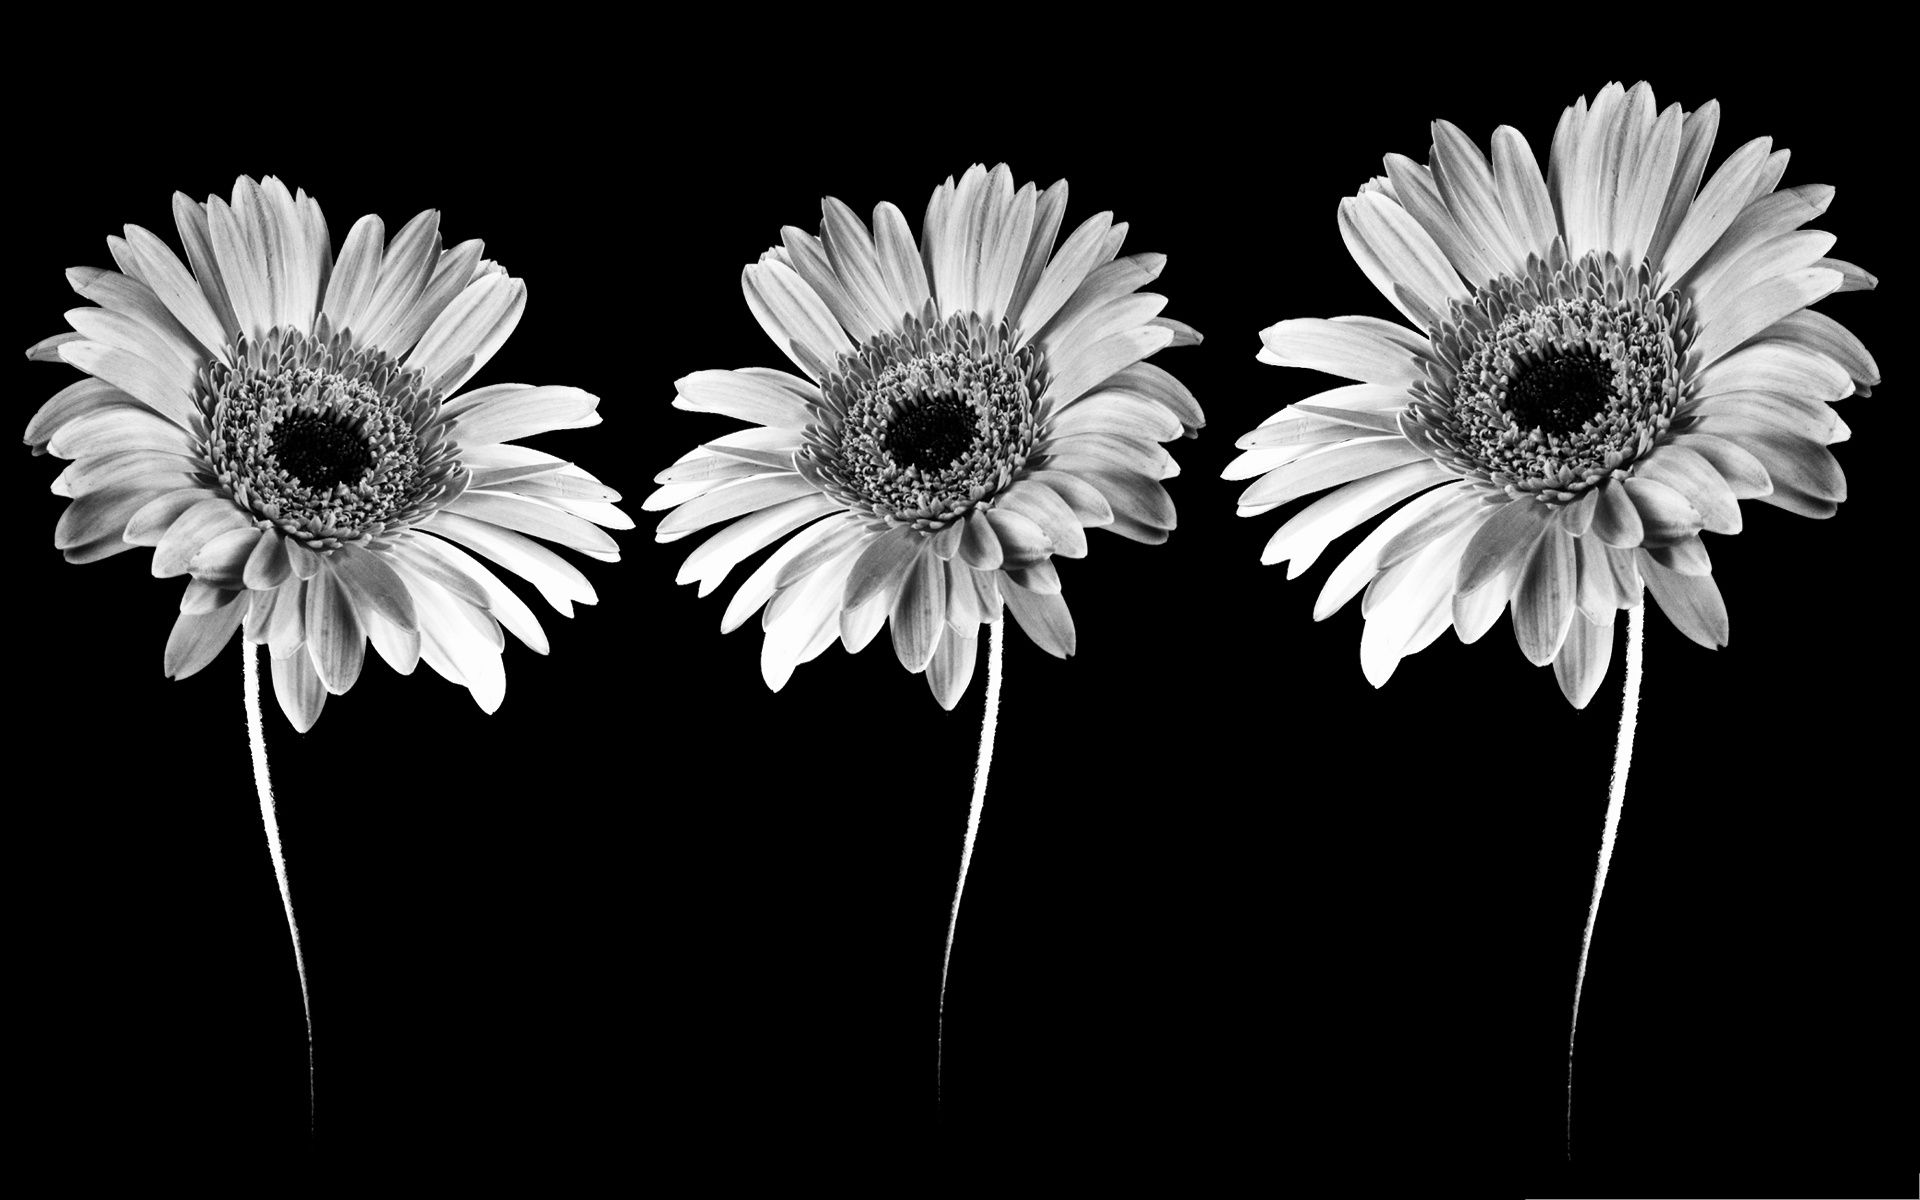 Black and white flowers wallpapers HD Hd wallpaper